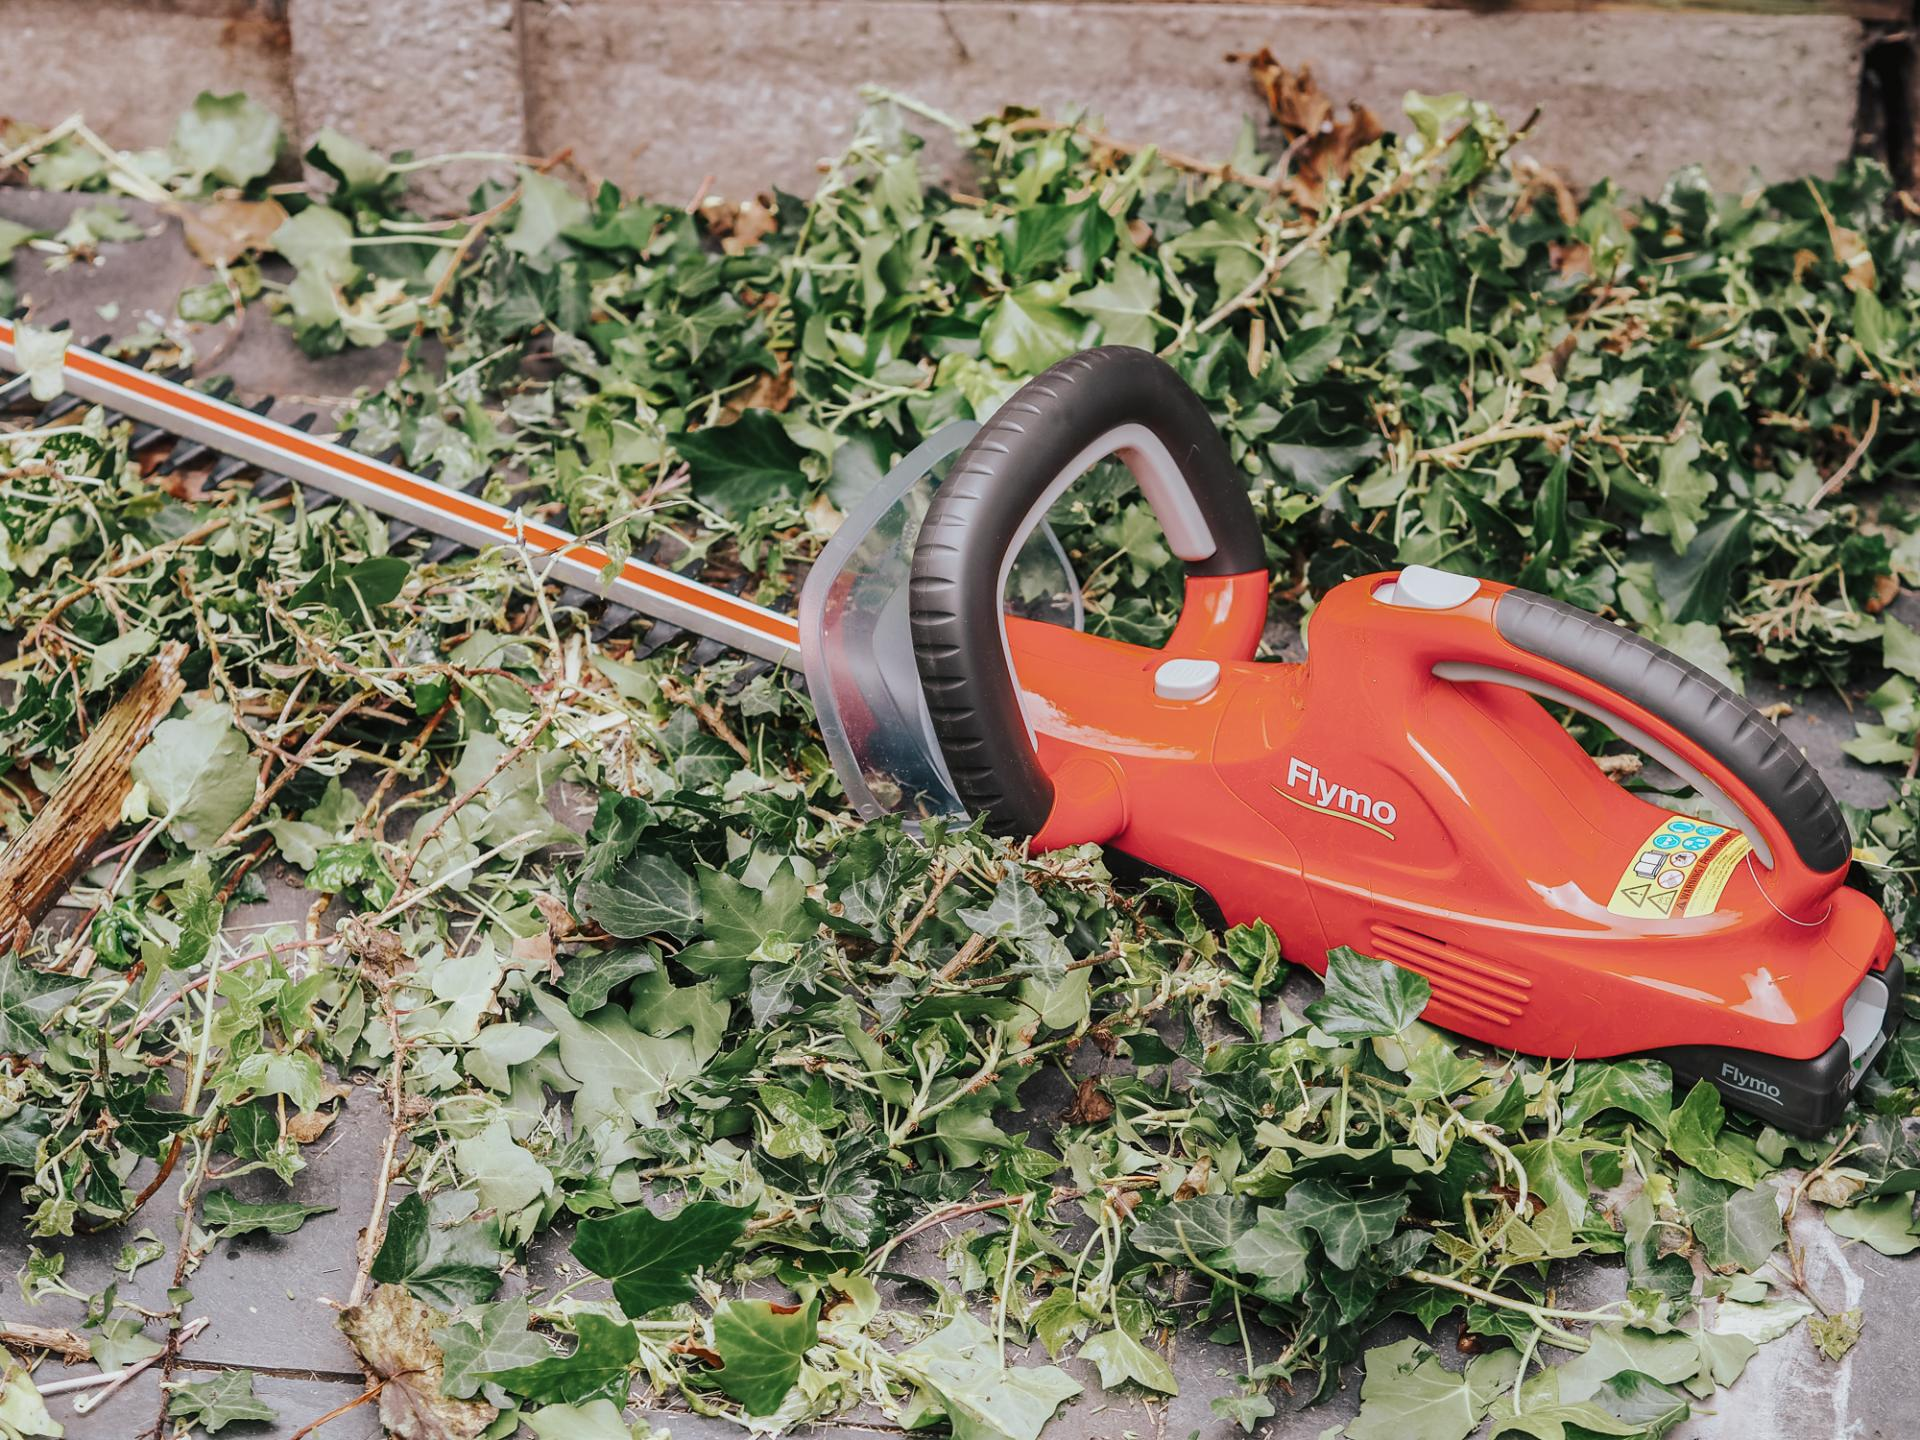 Flymo hedge trimmer review from blogger Bunnipunch